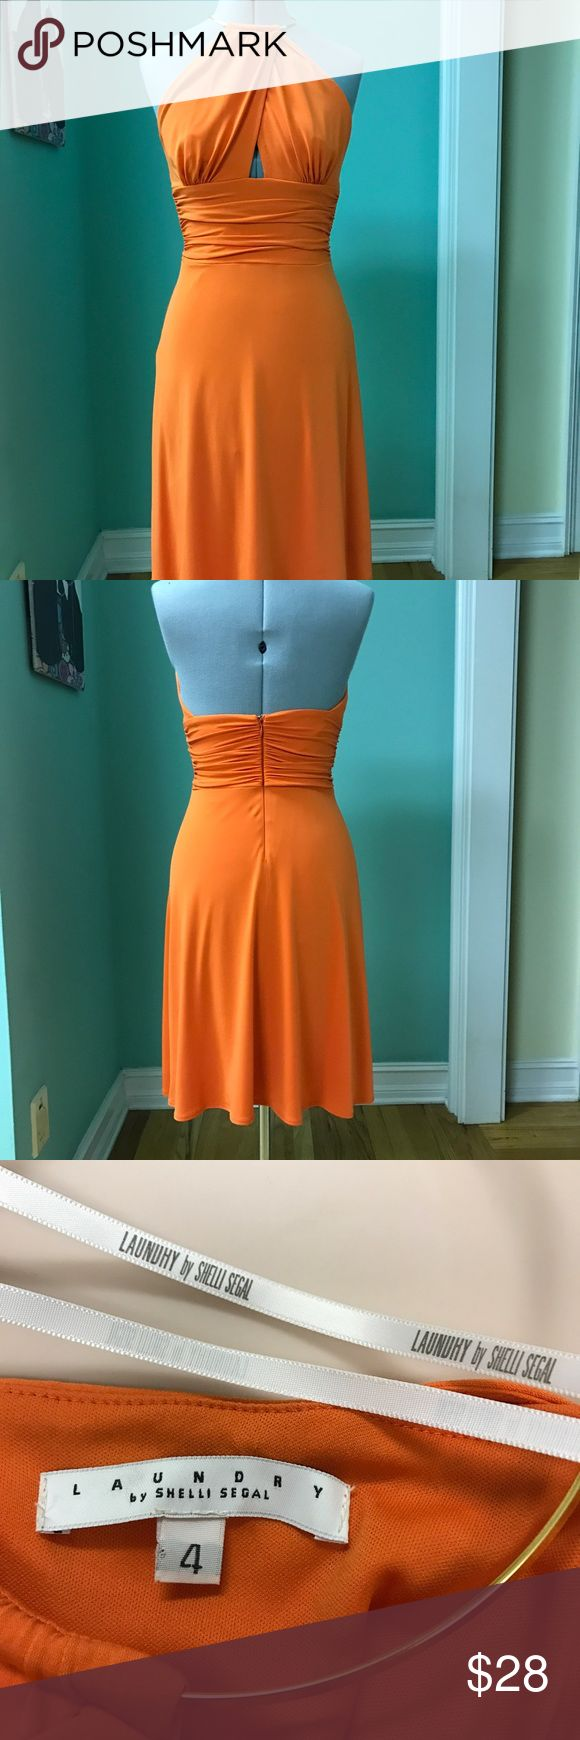 Laundry by Shelli Segal dress Beautiful electric orange dress by Shelli Segal. Halter top is anchored at the neck  by a gold neckpiece. Comfortable stretchy fabric. Laundry by Shelli Segal Dresses